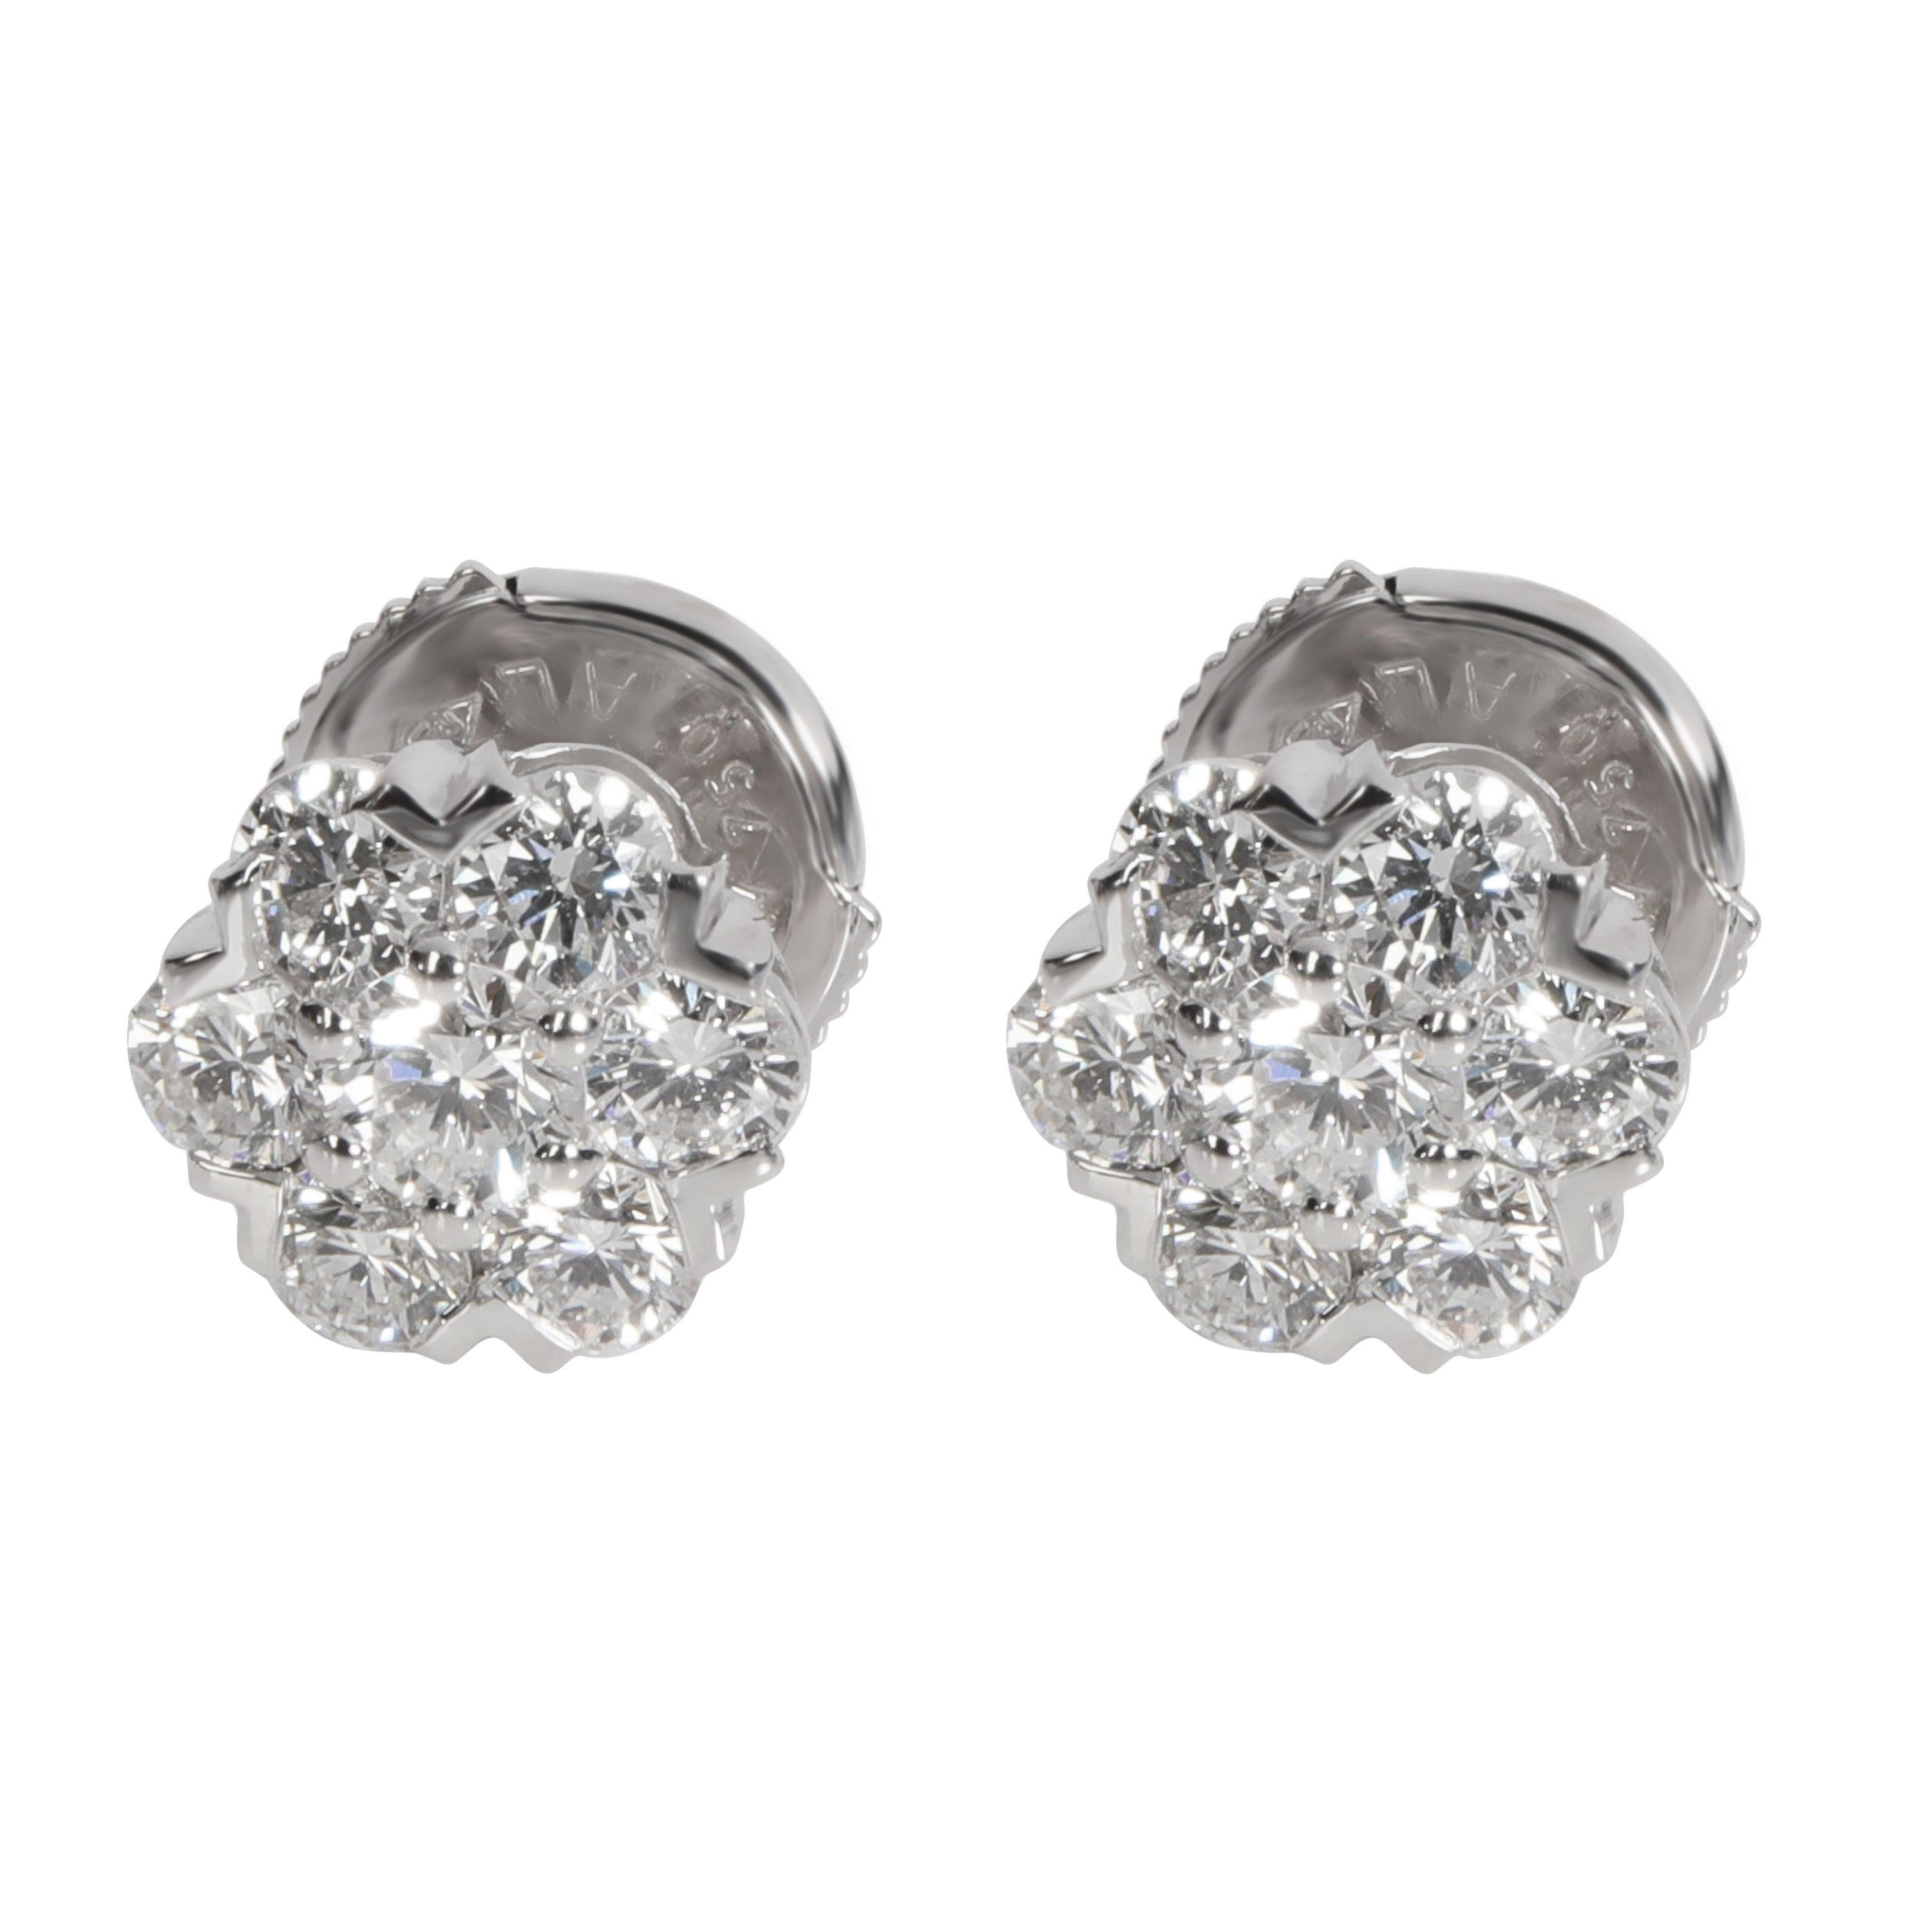 Van Cleef & Arpels Fleurette Diamond Earring in 18K White Gold 1.00 CTW